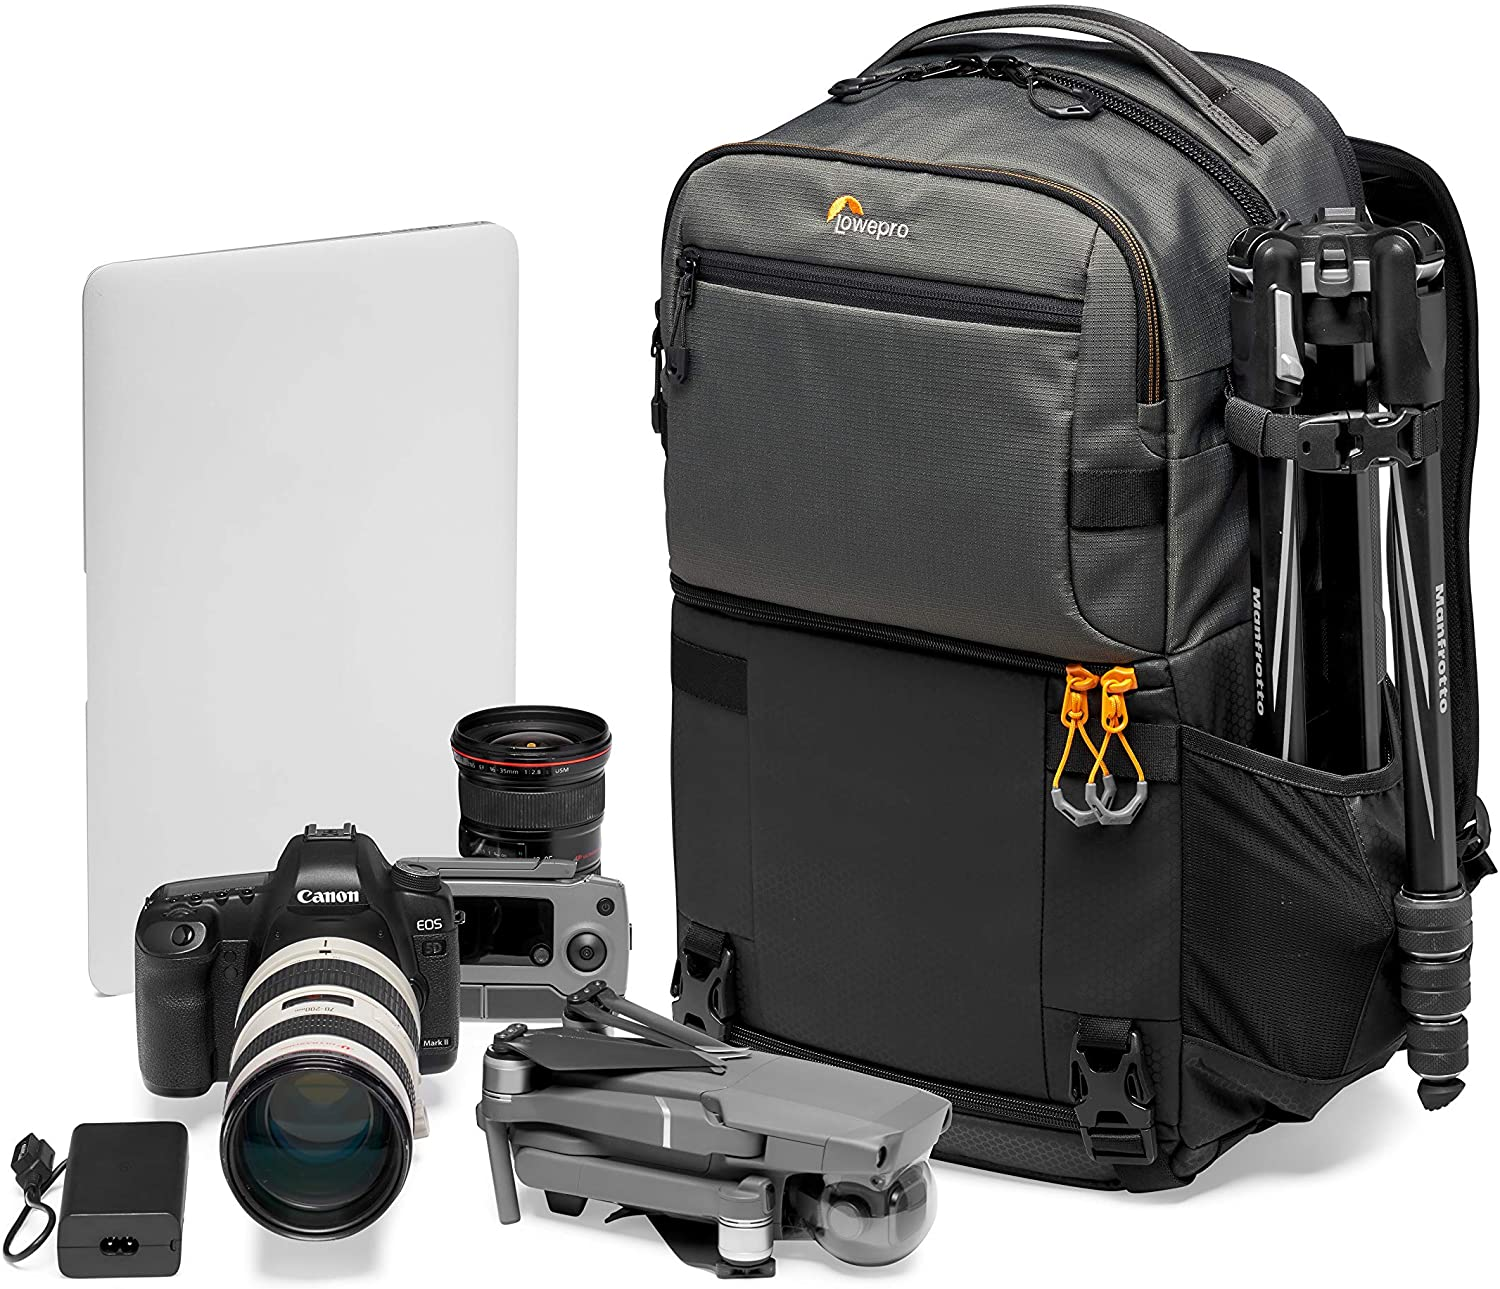 Lowepro Fastpack PRO BP 250 AW III Mirrorless and DSLR Camera Backpack, QuickDoor Access Camera Bag Insert, 15 inch Laptop Compart- Camera Bag Backpack for Mirrorless, DSLR, Nikon D850, 300D Ripstop